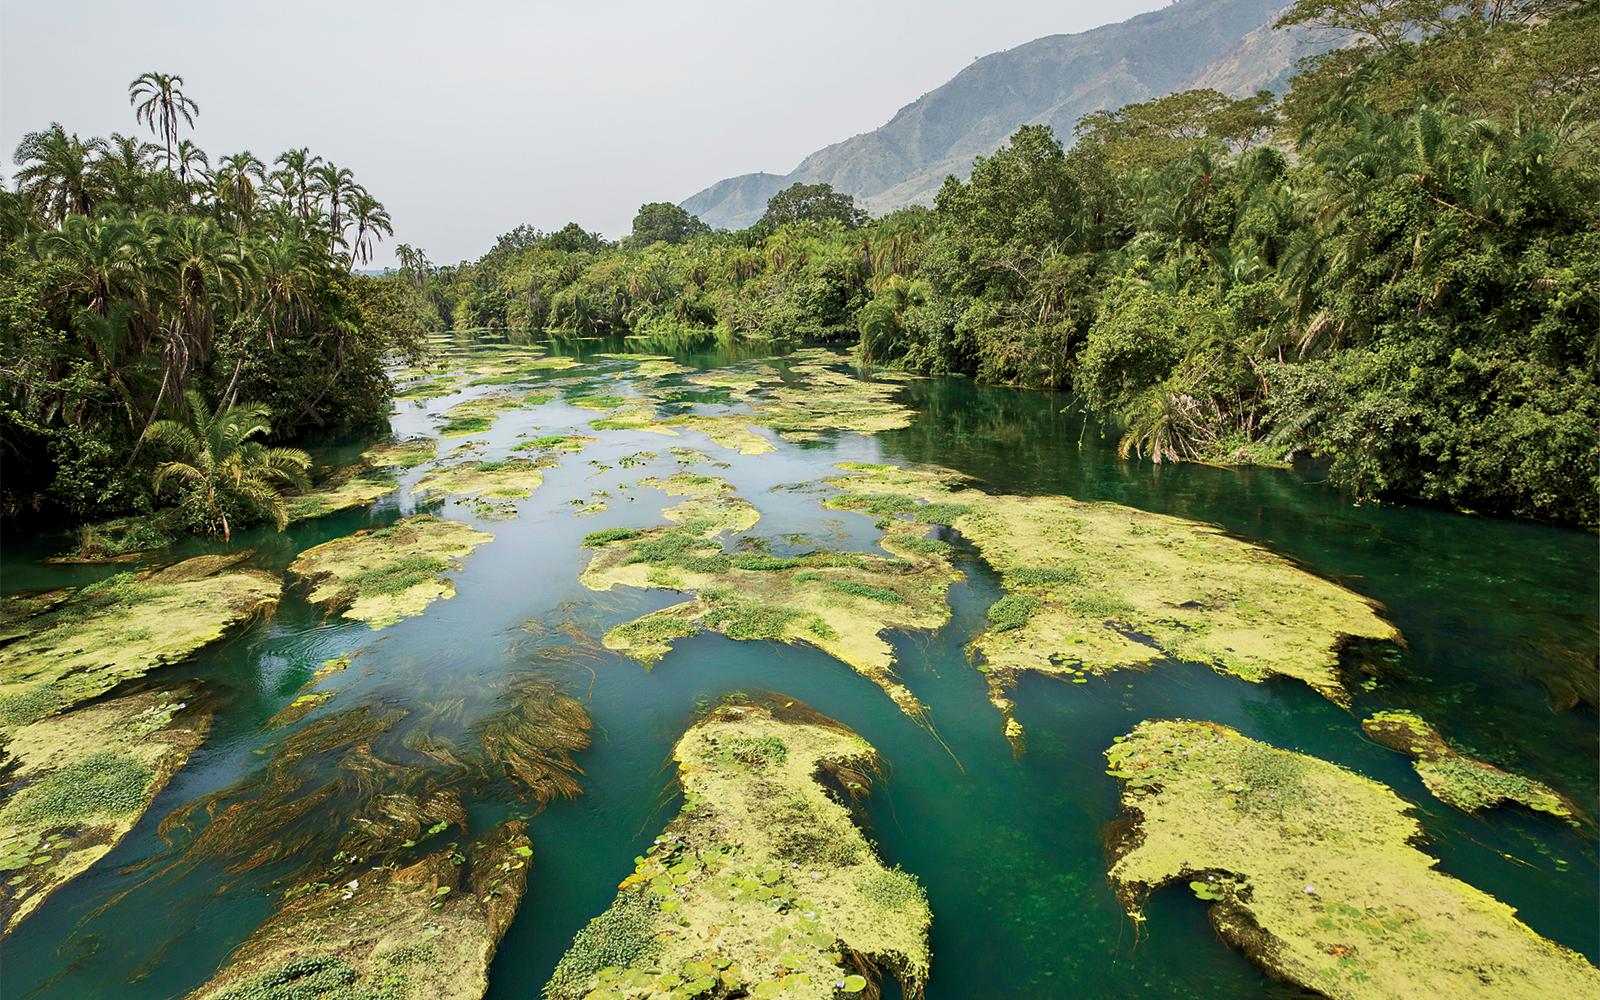 One of a series of pristine water holes in Virunga National Park, as seen from a helicopter safari